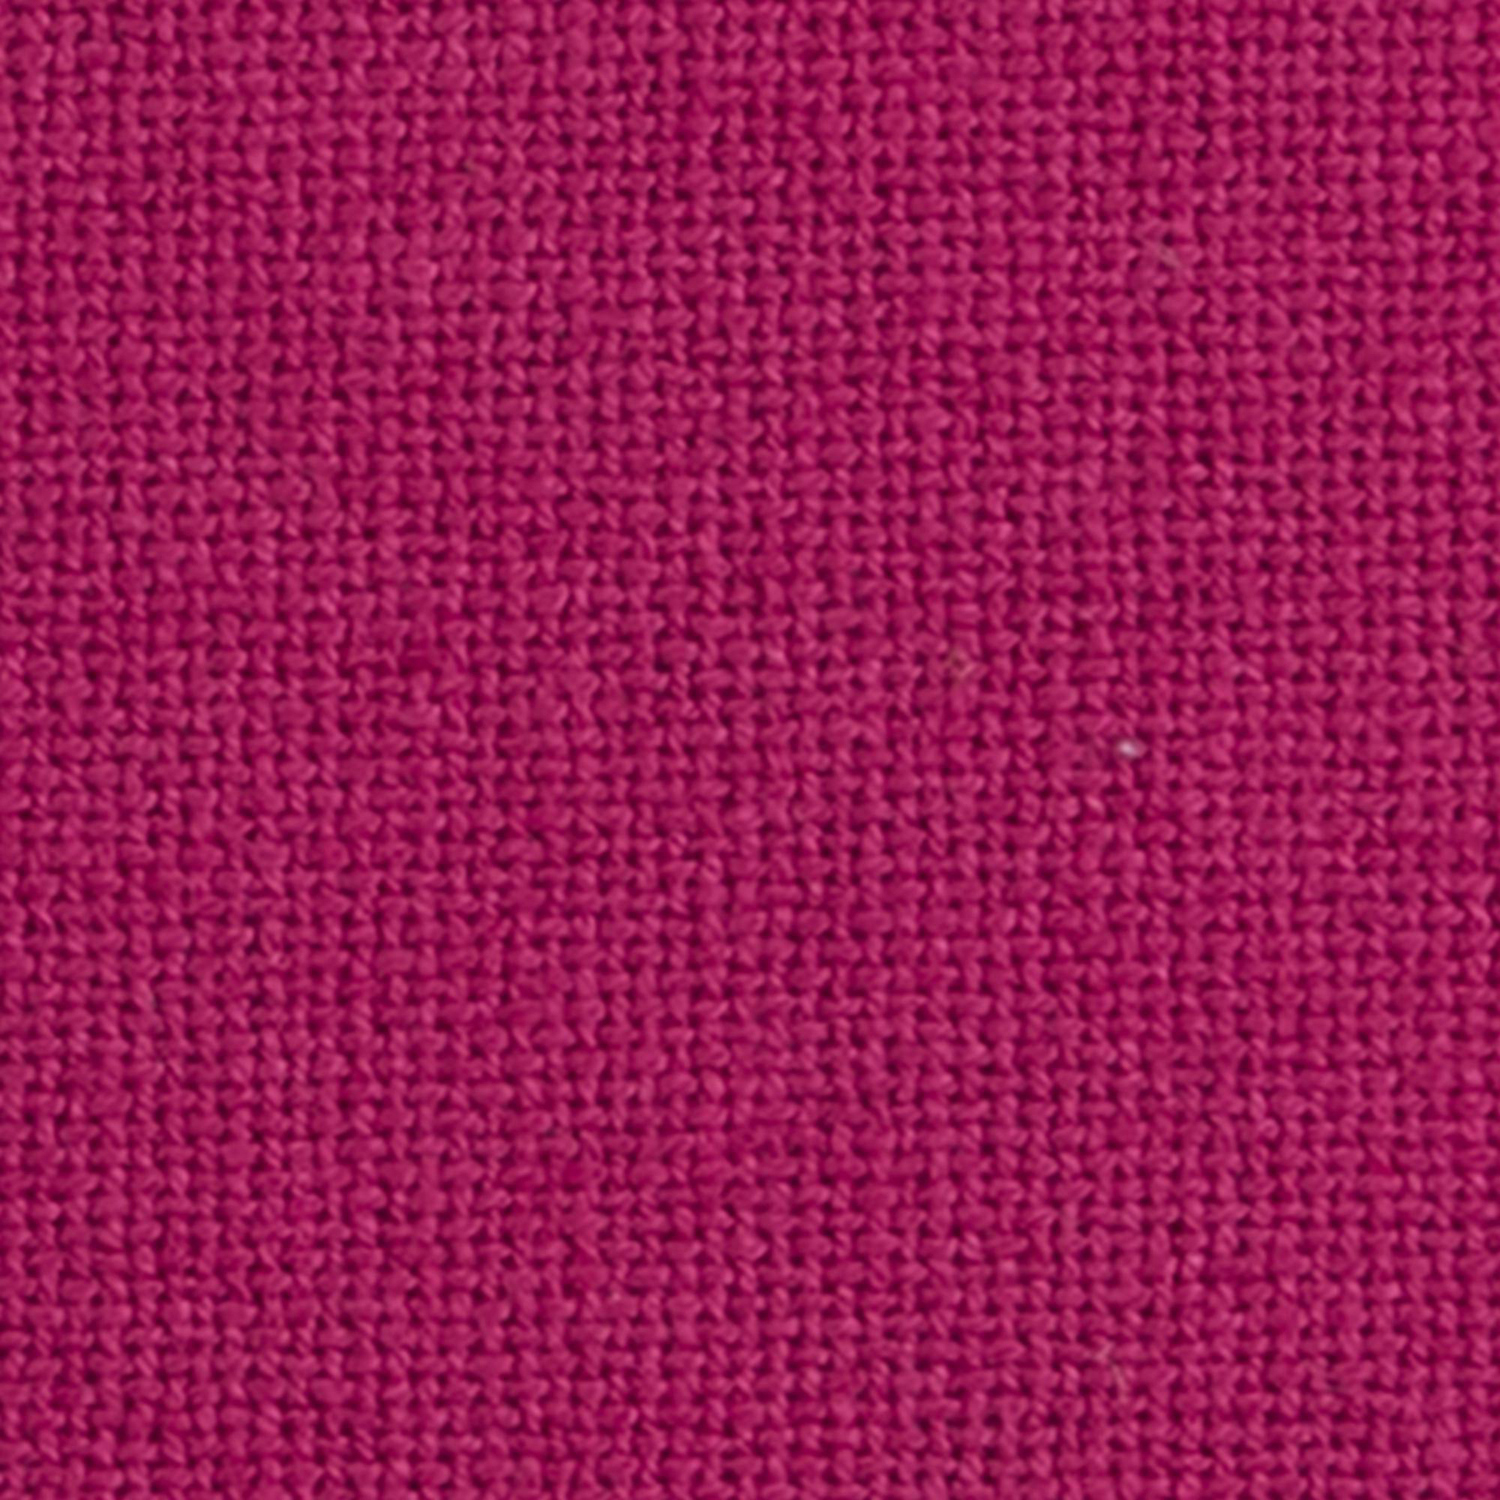 variation thumbnail of Trimmed Solid Dark Pink Pillow Cover